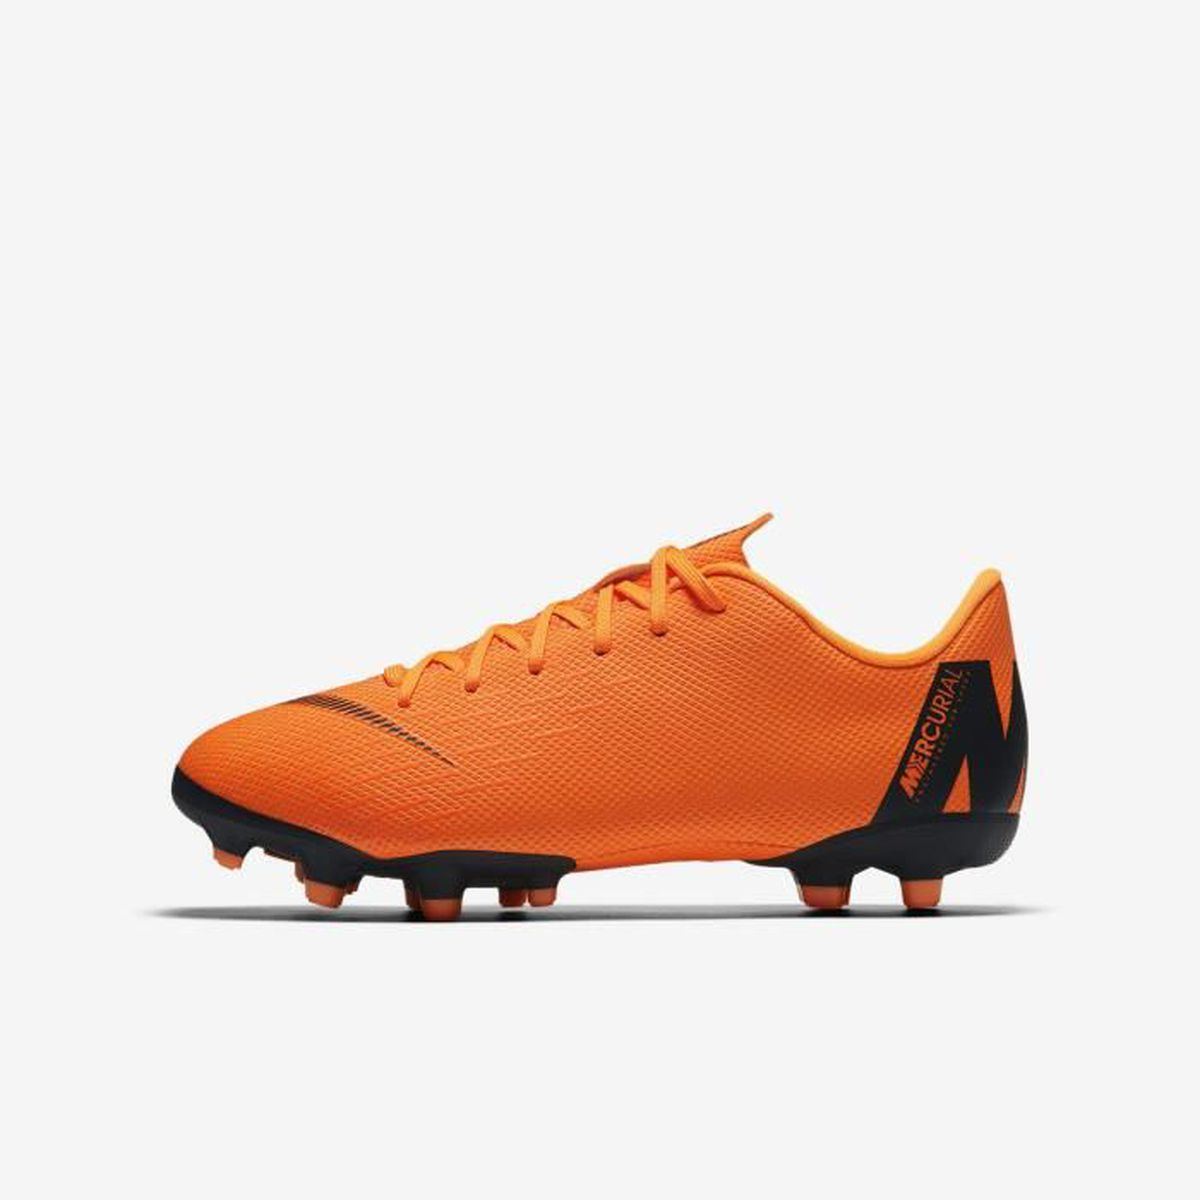 pretty nice 25400 1a8da CHAUSSURES DE FOOTBALL Nike Jr. Mercurial Vapor XII Academy MG, Multi gro